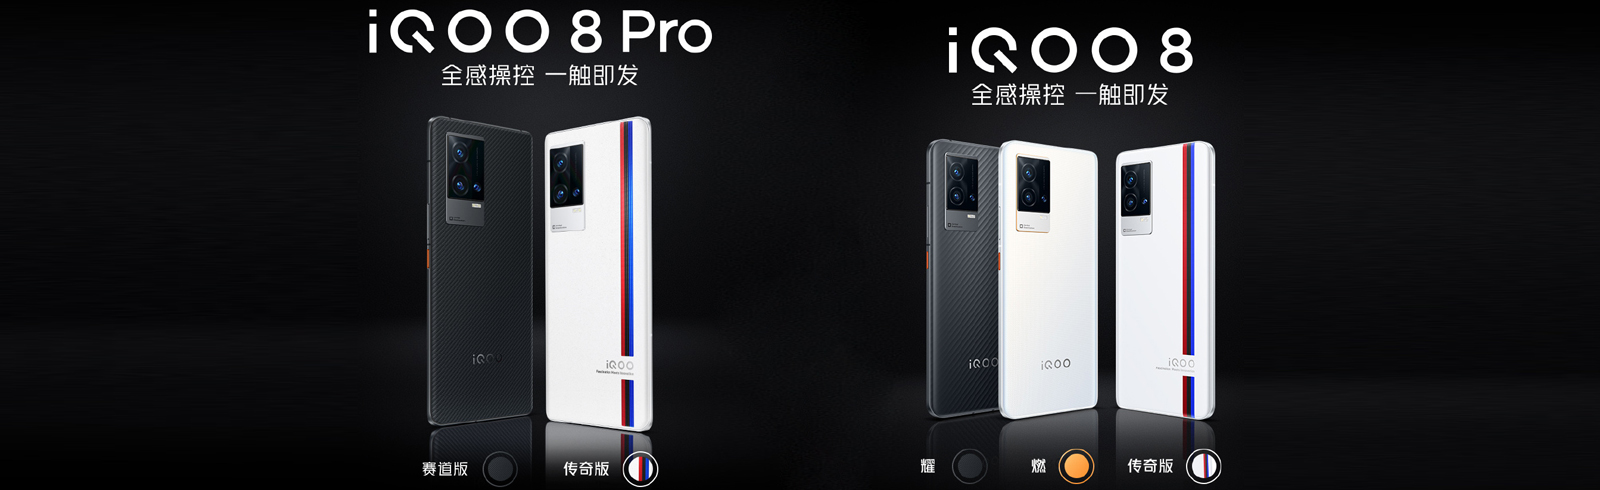 Vivo introduced the iQOO 8 and iQOO 8 Pro with Snapdragon 888+ and 120Hz OLED displays